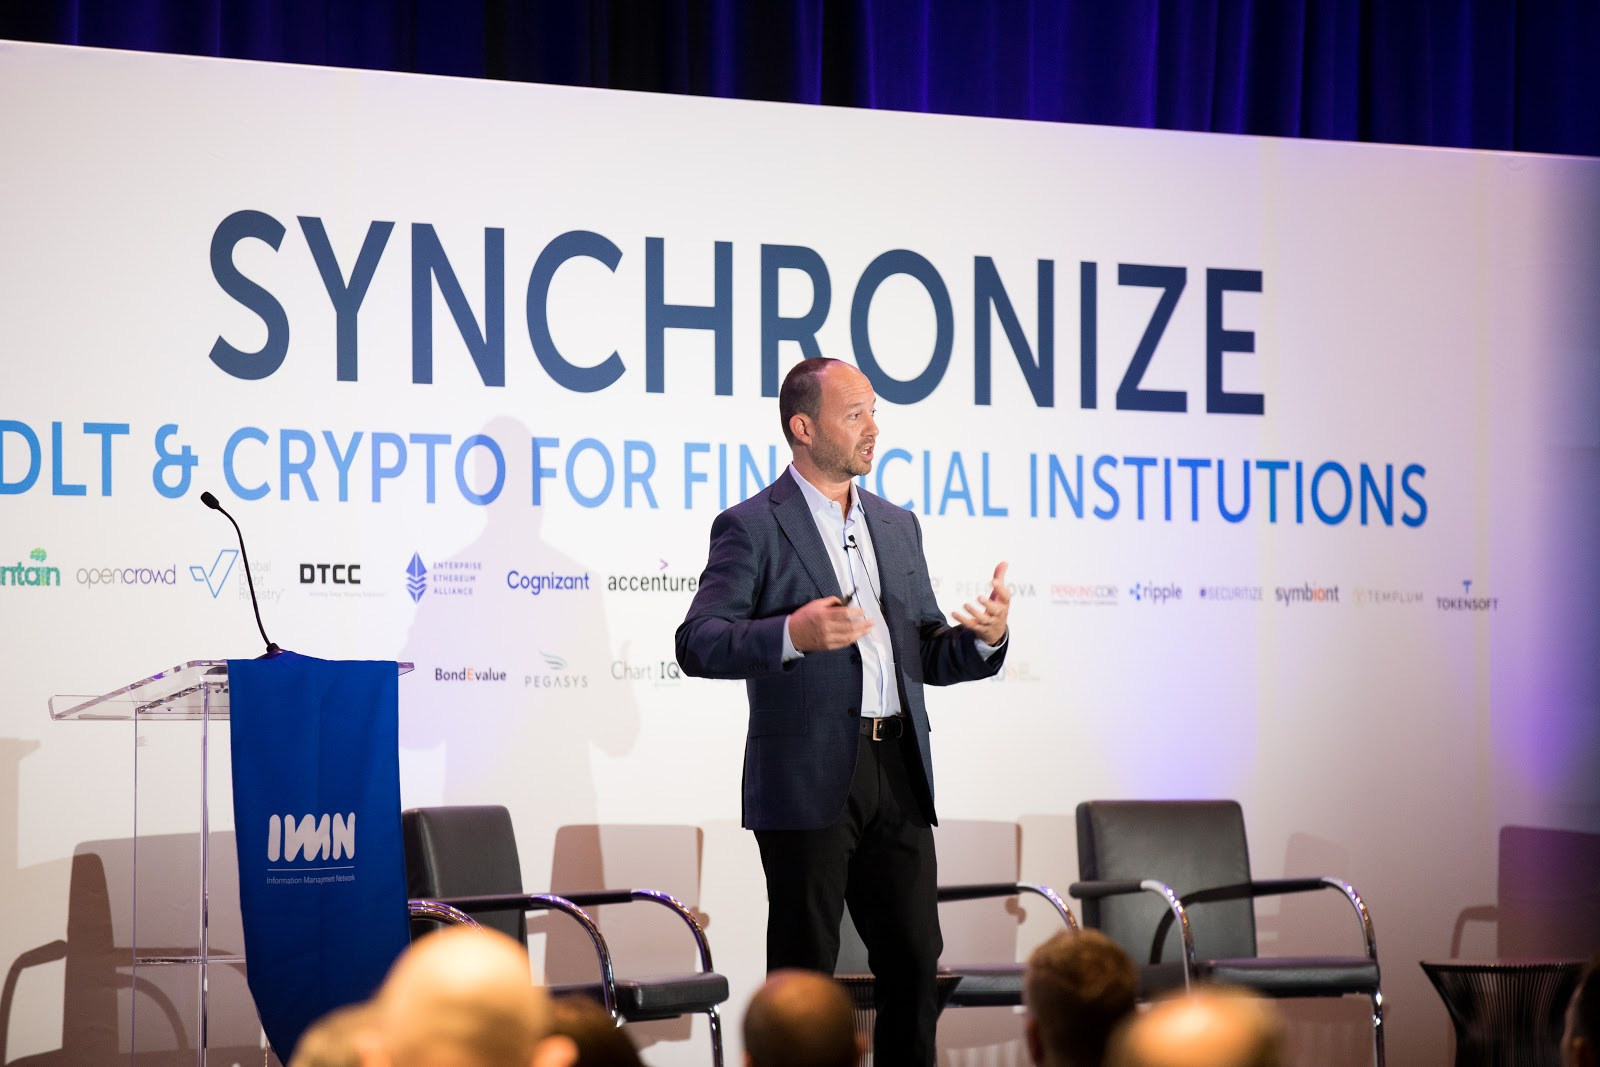 Synchronize New York 2019: Digital Asset and DLT in the Real World